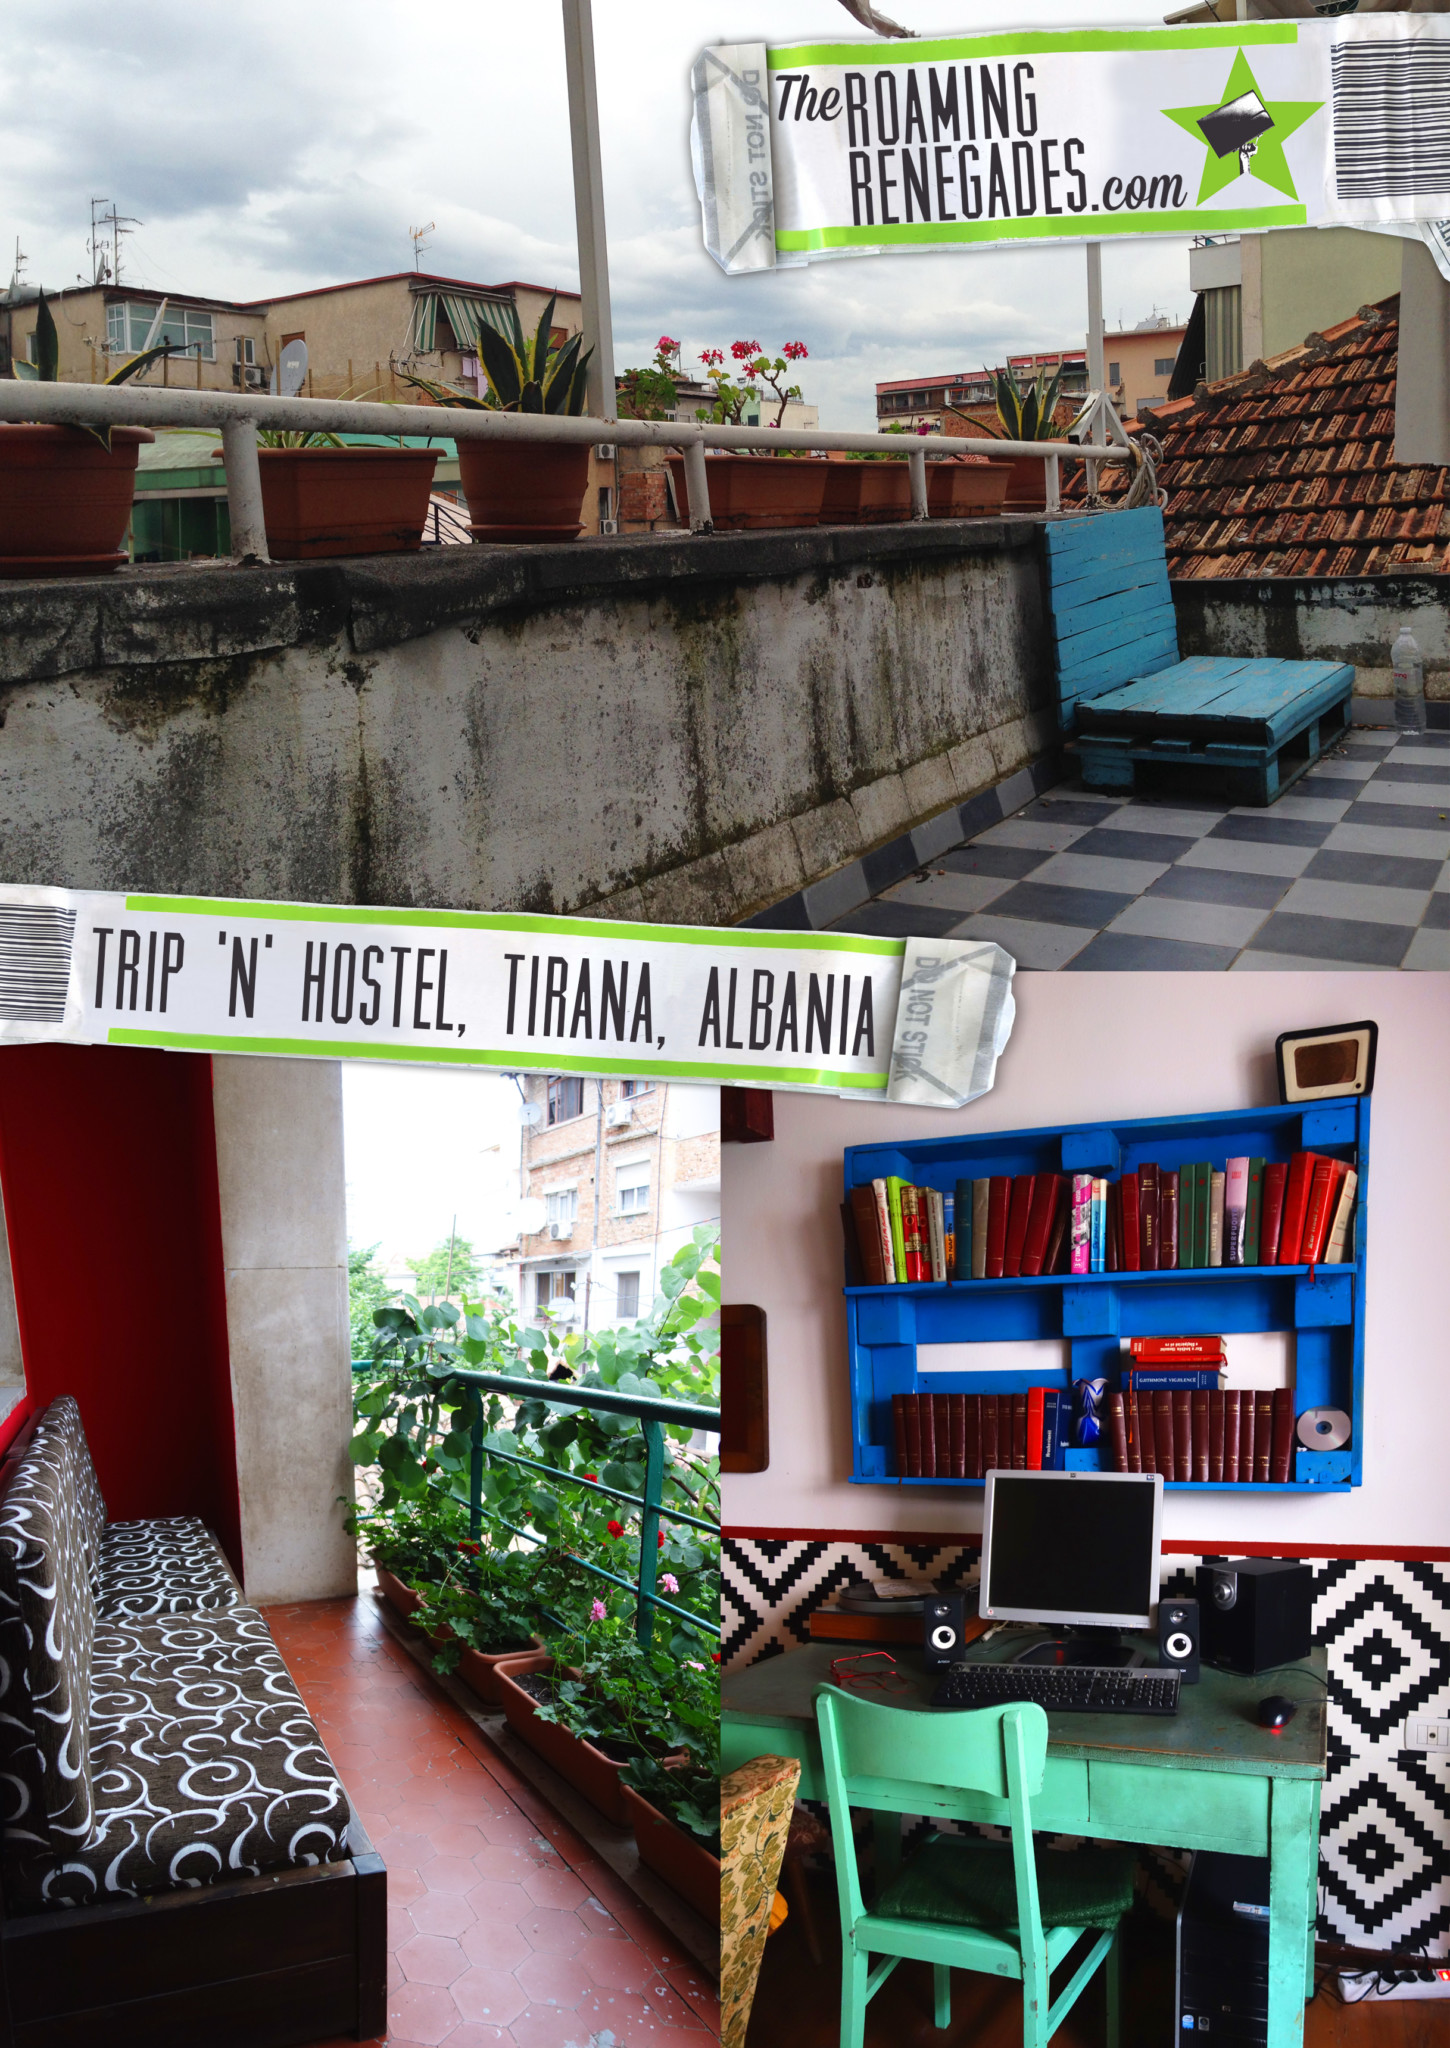 Hostel review: Trip 'n' Hostel, Tirana, Albania!